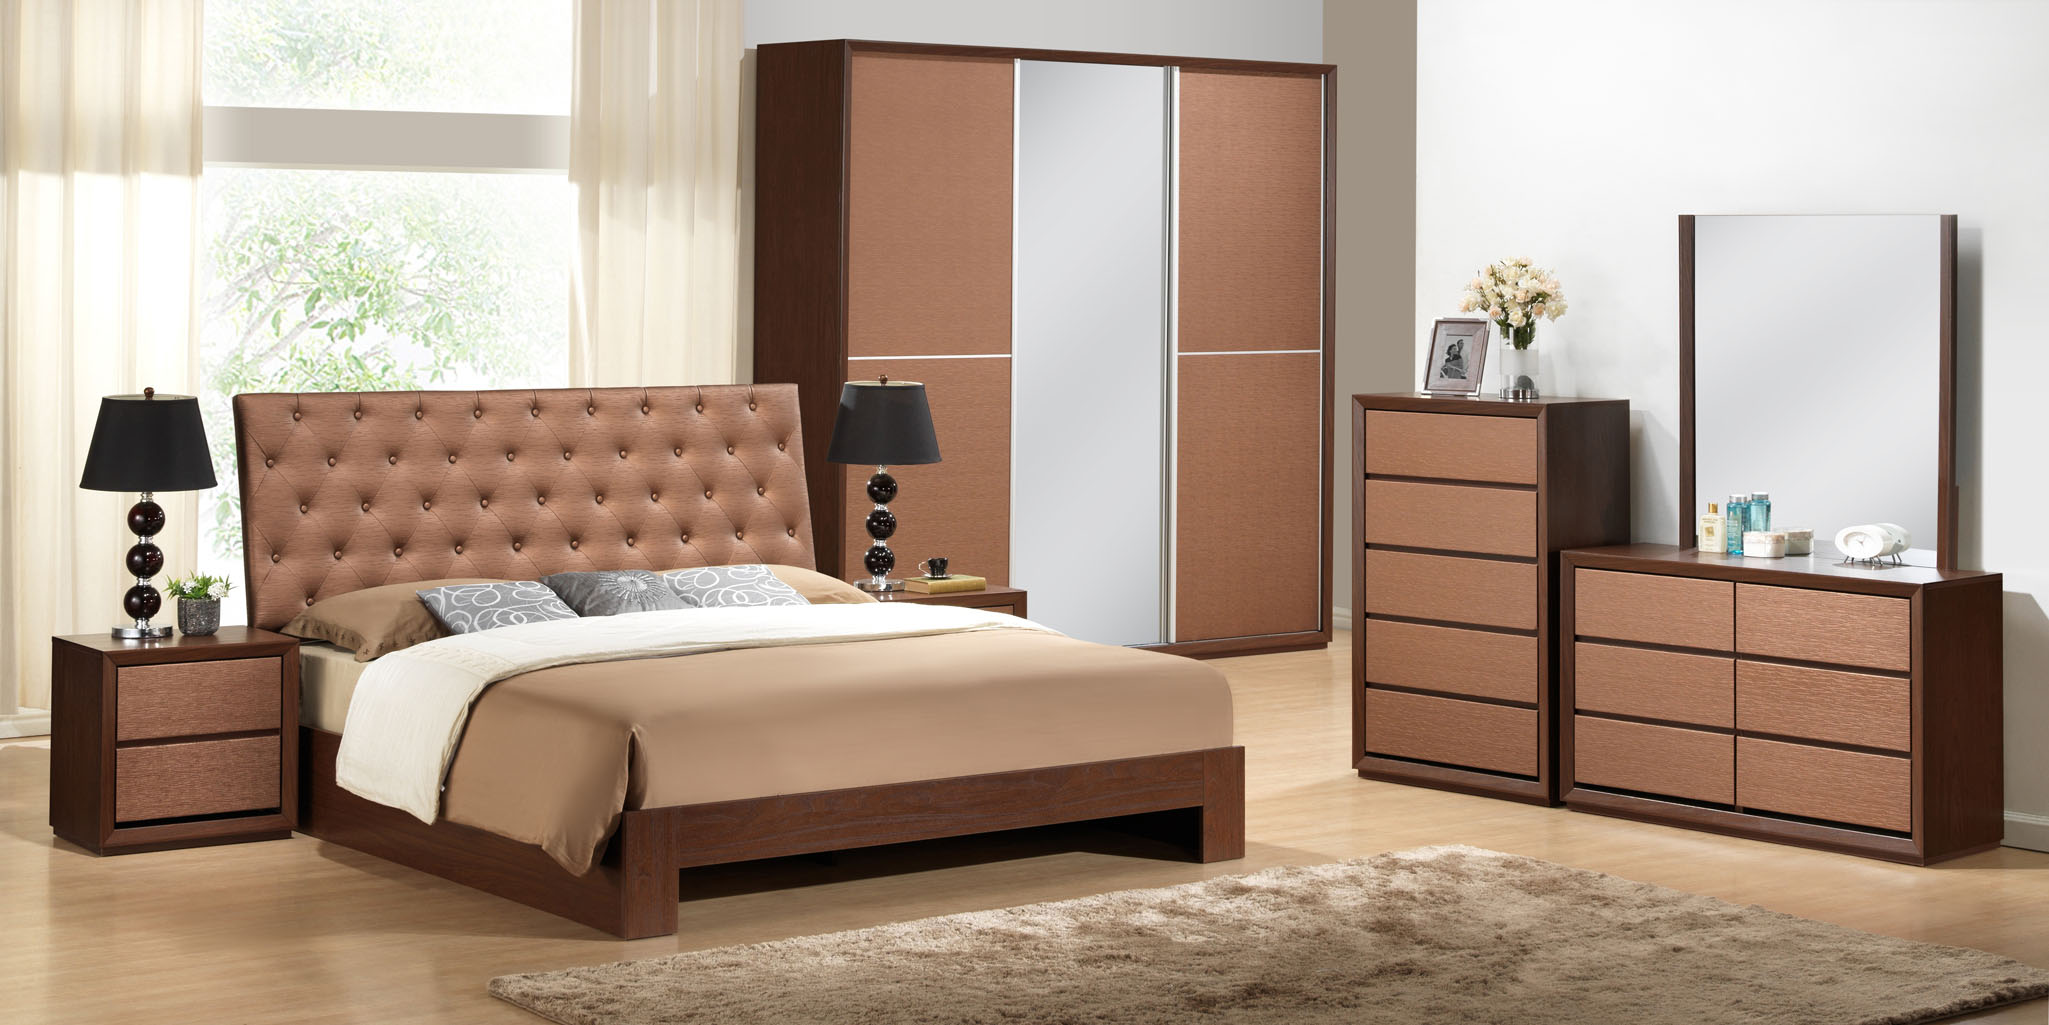 Quincy Bedroom Set Fair Production Sdn Bhd